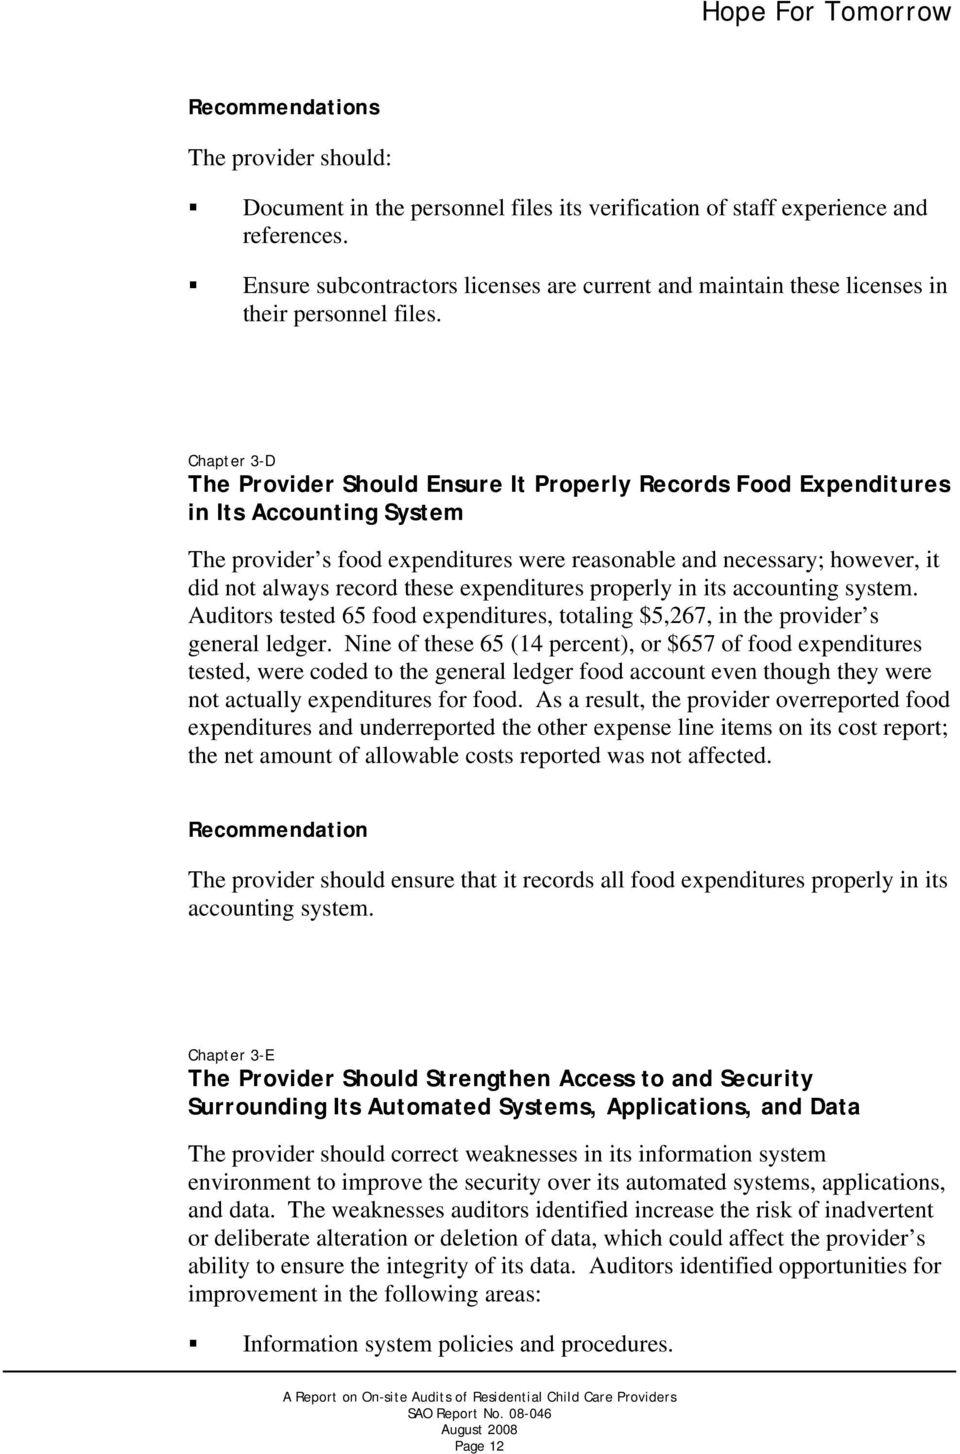 Chapter 3-D The Provider Should Ensure It Properly Records Food Expenditures in Its Accounting System The provider s food expenditures were reasonable and necessary; however, it did not always record